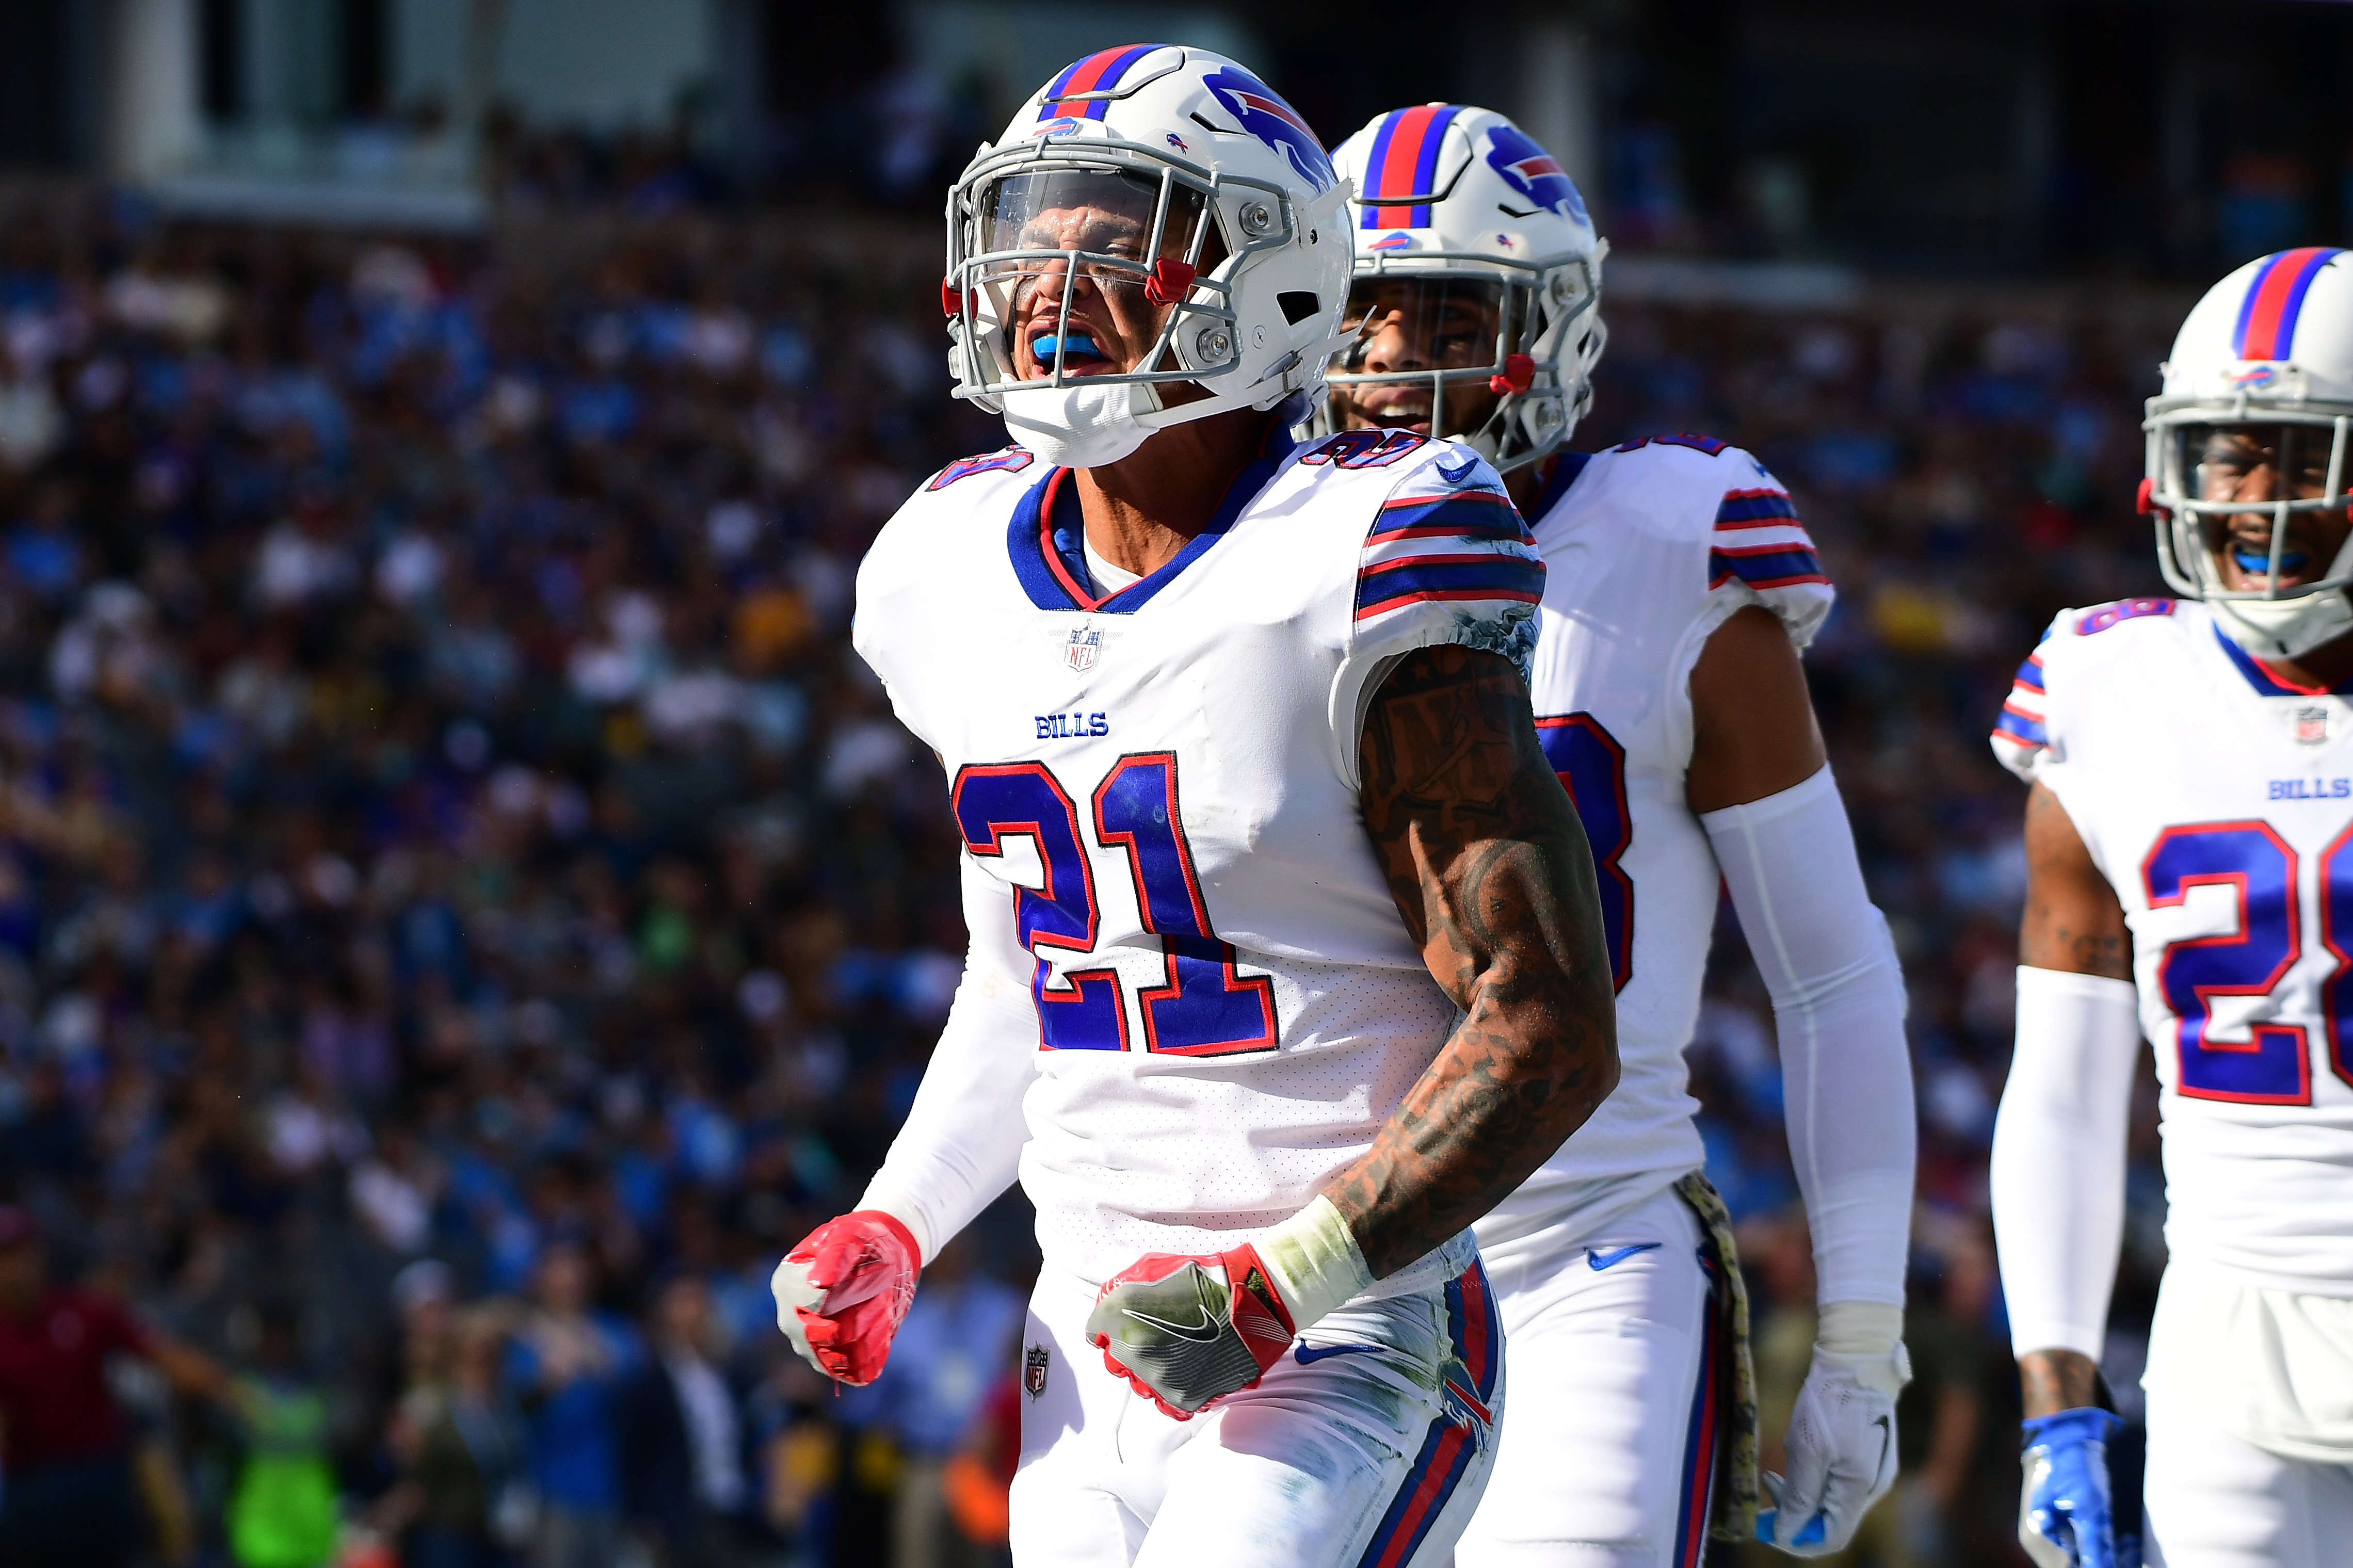 Jordan Poyer may get challenged to a home-run derby by fellow safety Micah  Hyde during his charity softball event on June 2. (Getty Images) 8912cb1cb